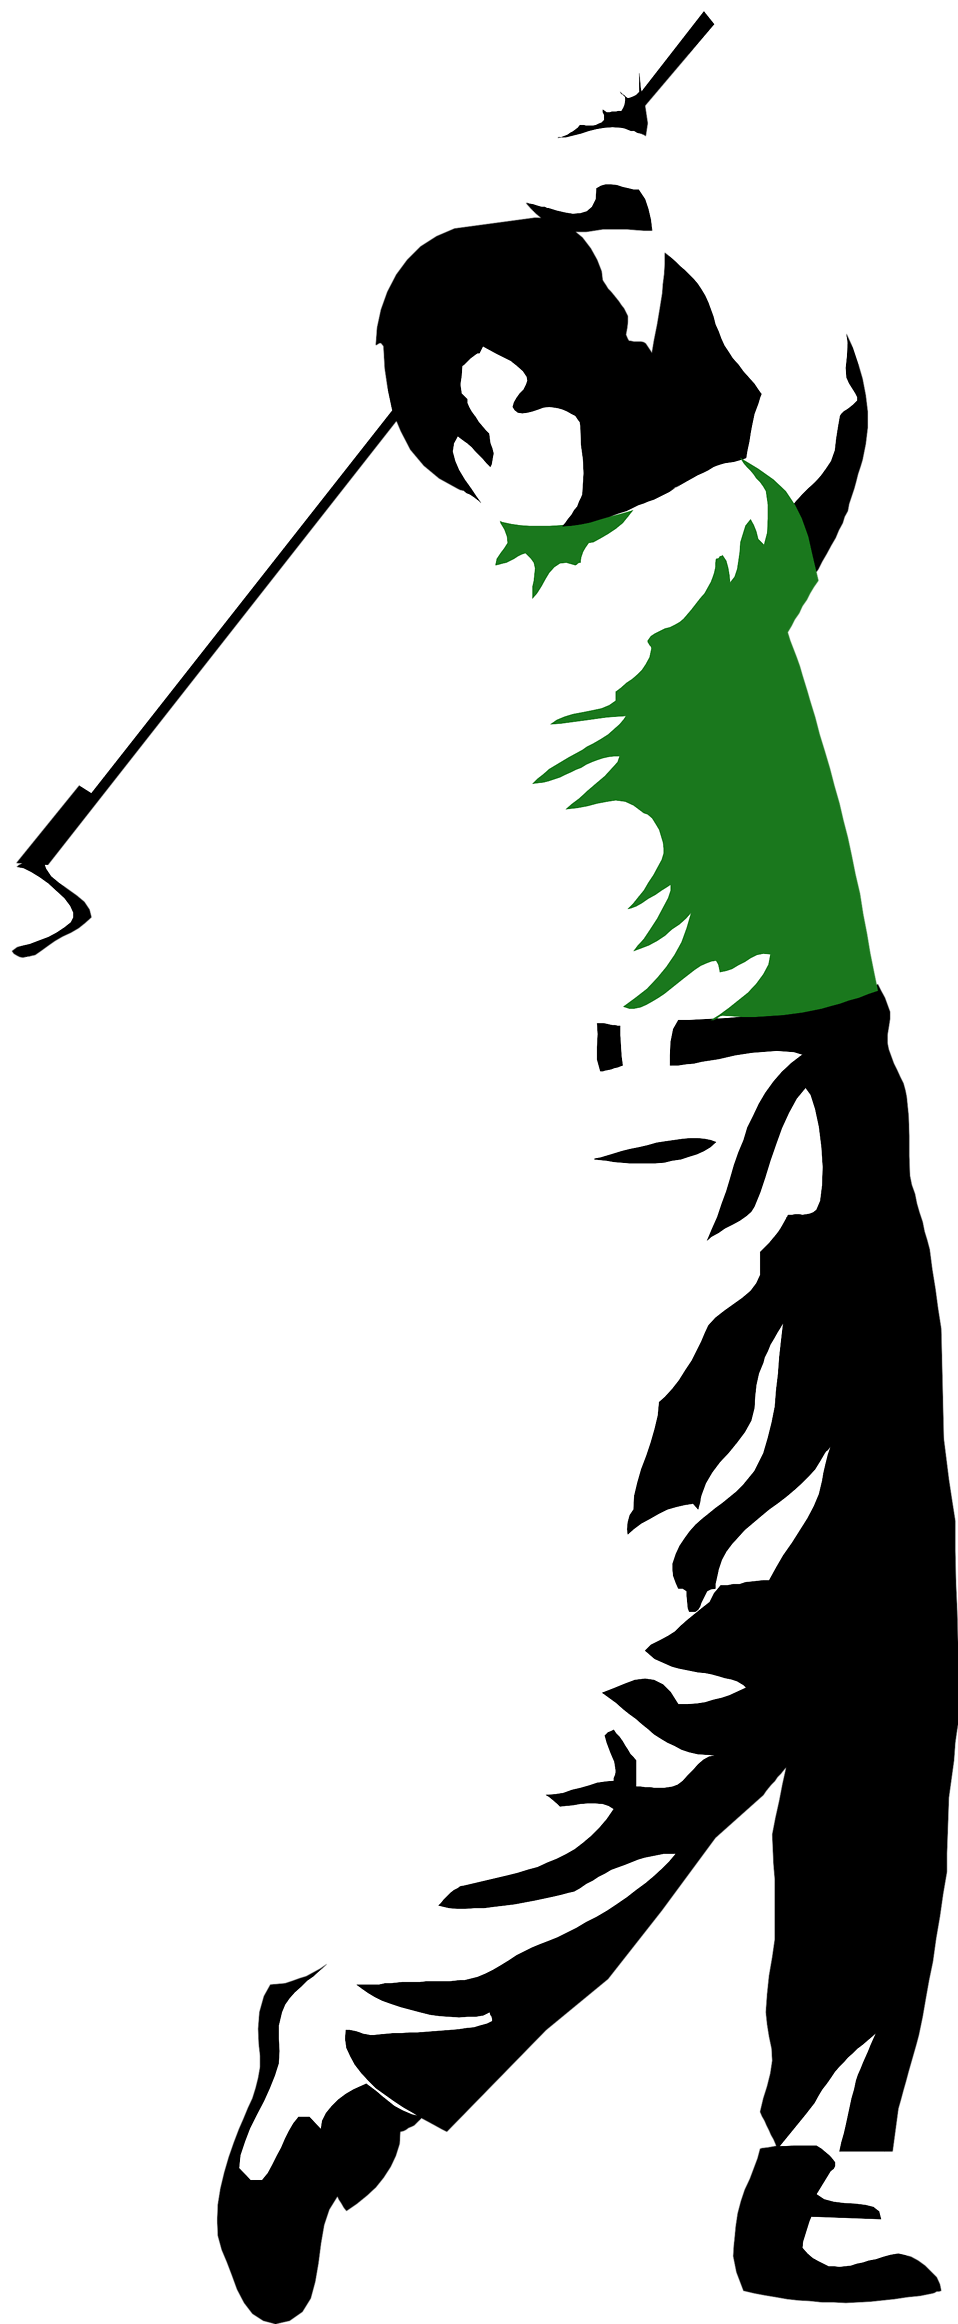 Illustration of a man swinging a golf club : Free Stock Photo